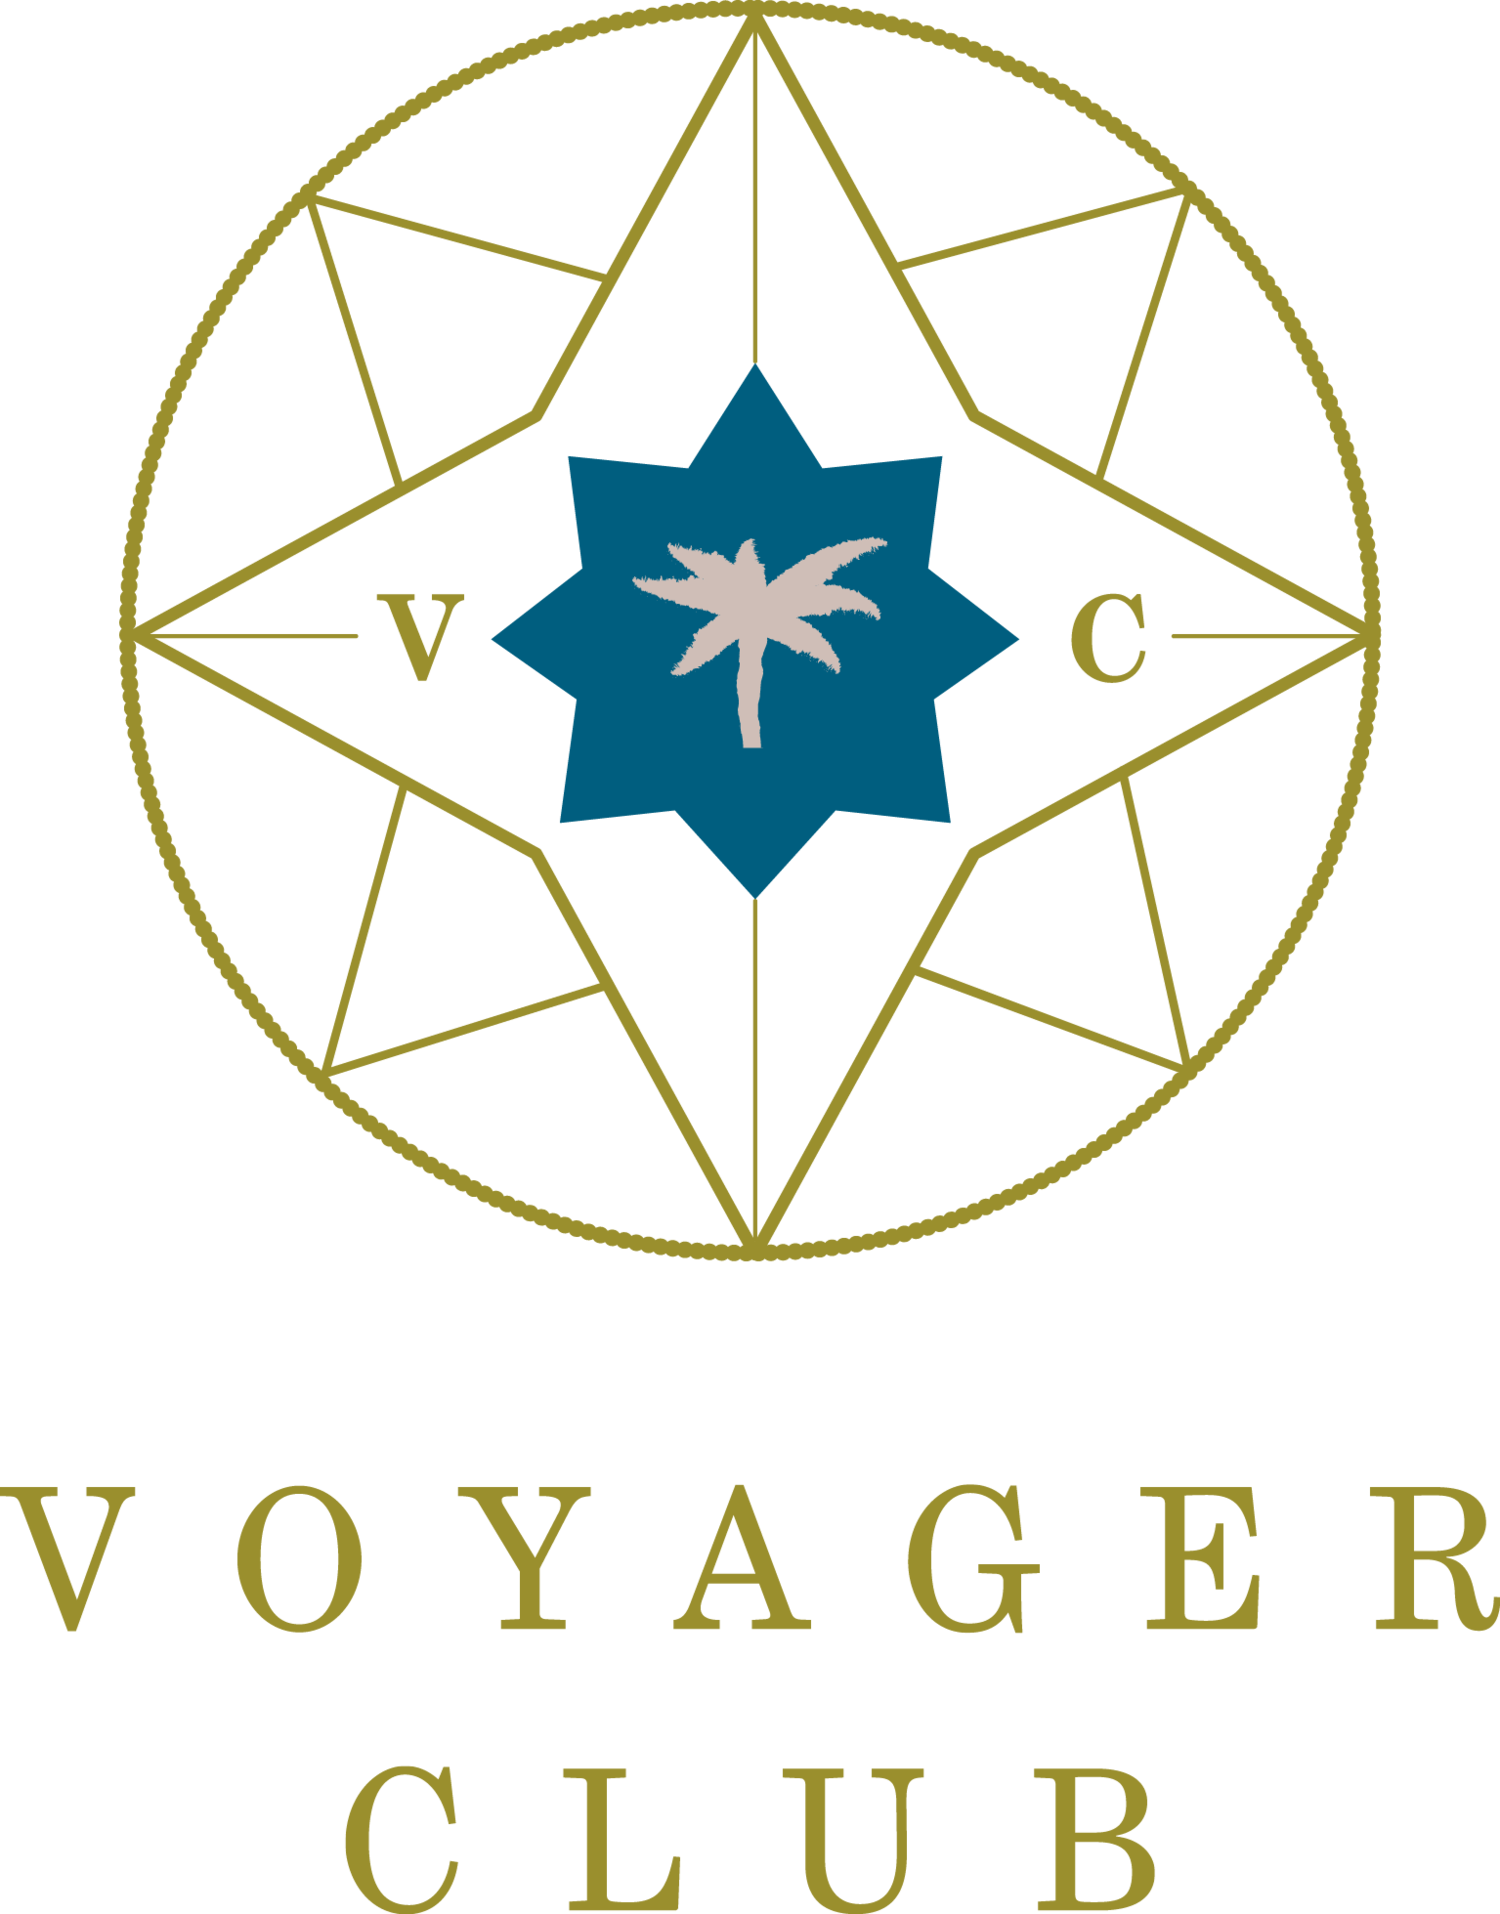 Voyager Club